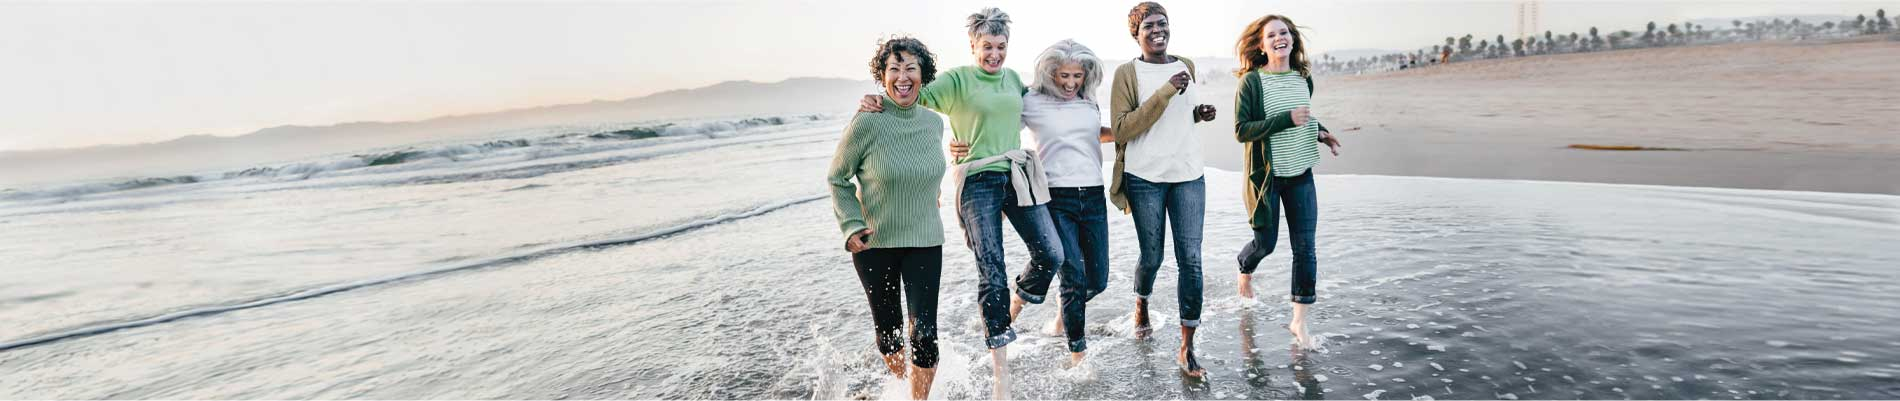 Five women laughing and kicking the water on the beach